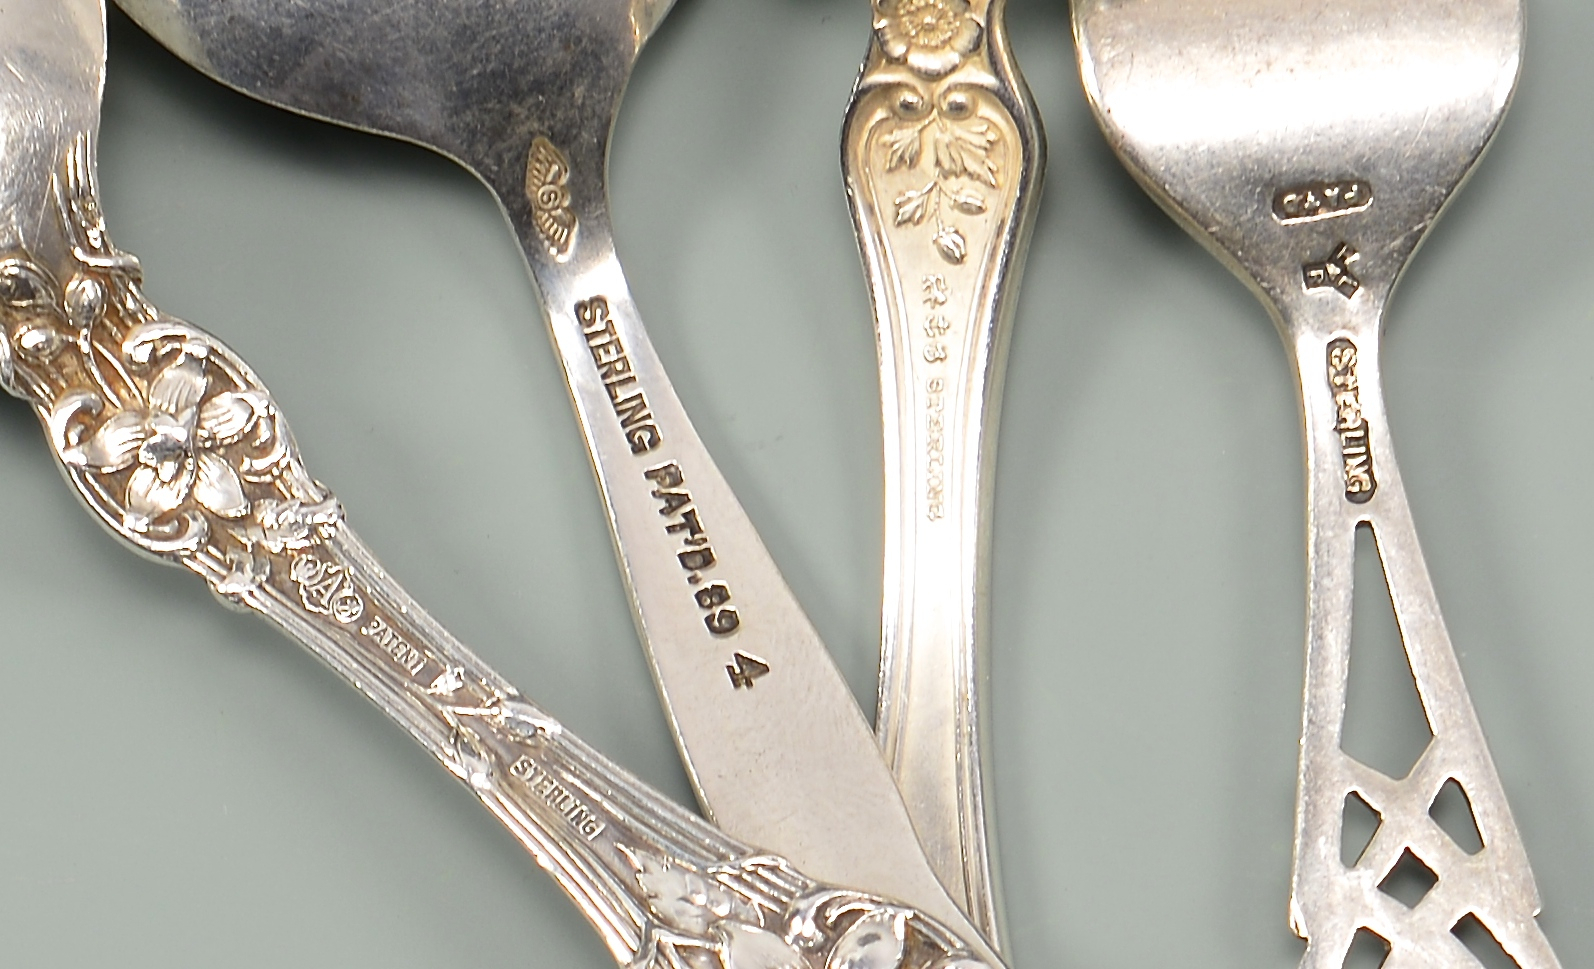 Lot 56: Tiffany Lap Edge Serving Spoon plus other sterling